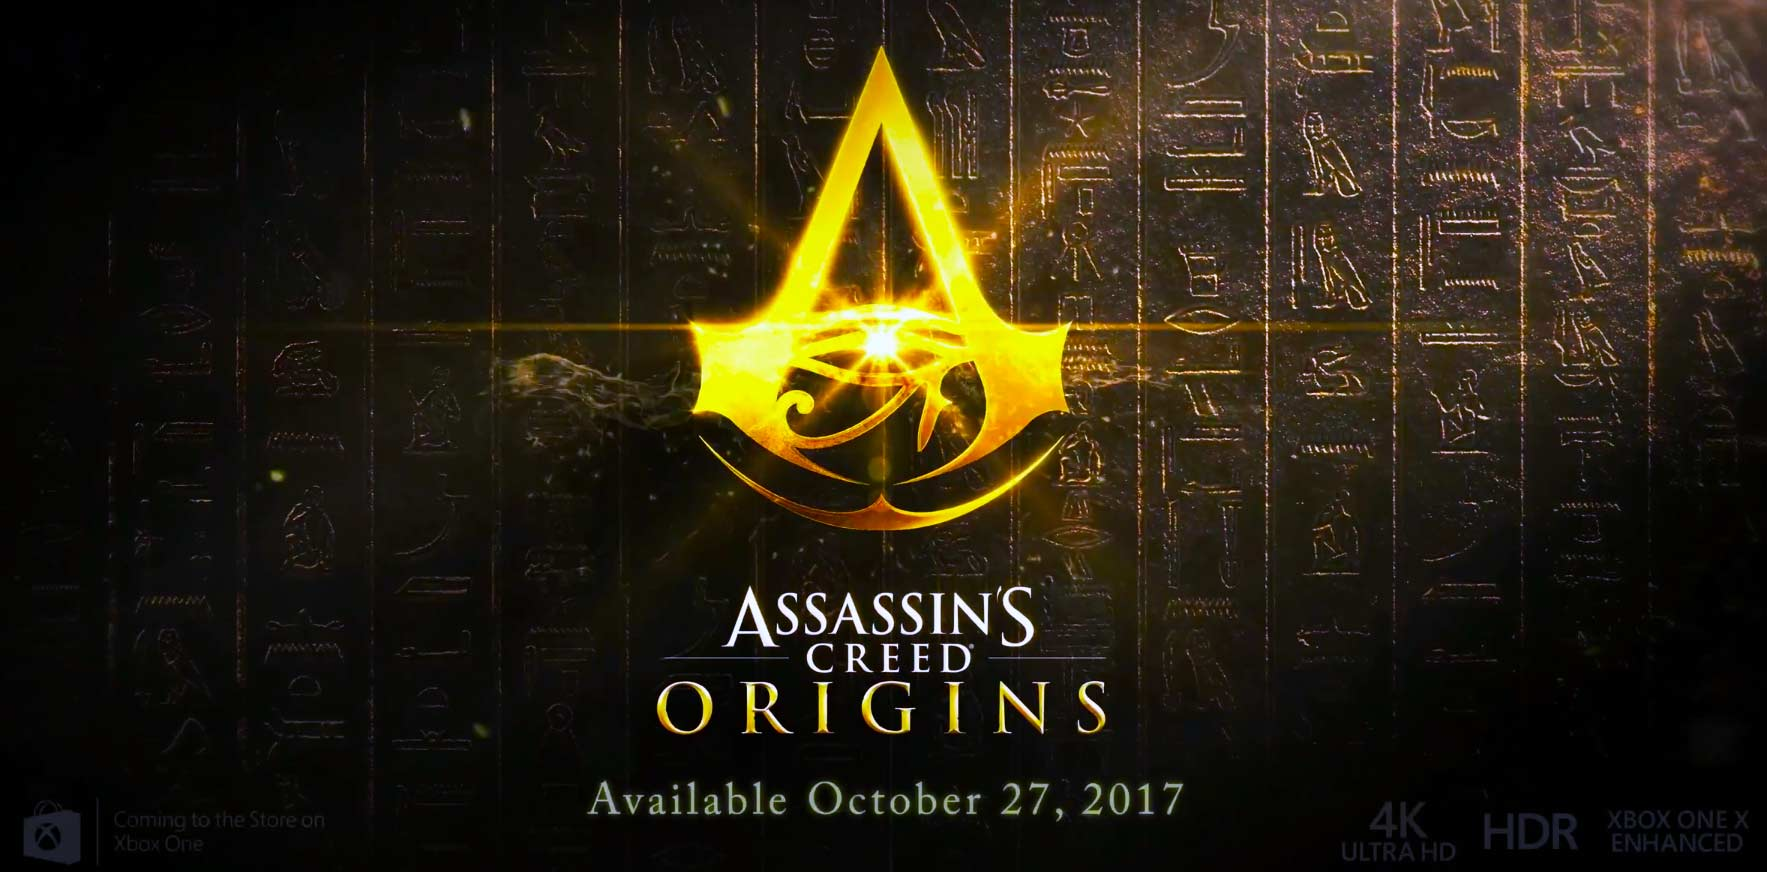 Assassin S Creed Origins Alpha Gameplay Shown At Xbox E3 Event